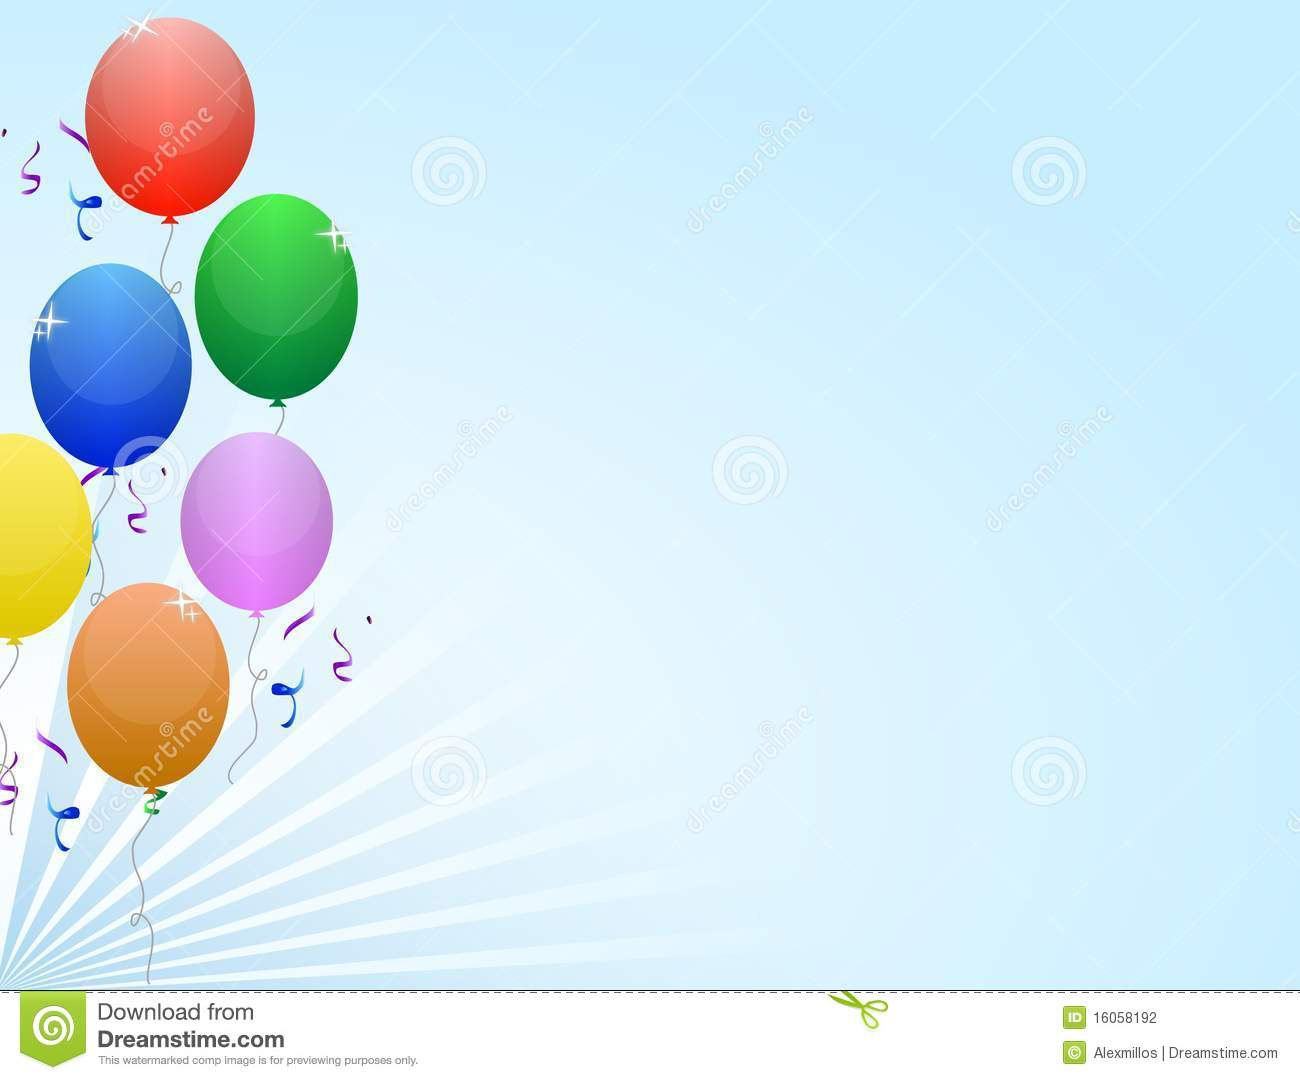 Balloons party frame stock vector. Image of birthday